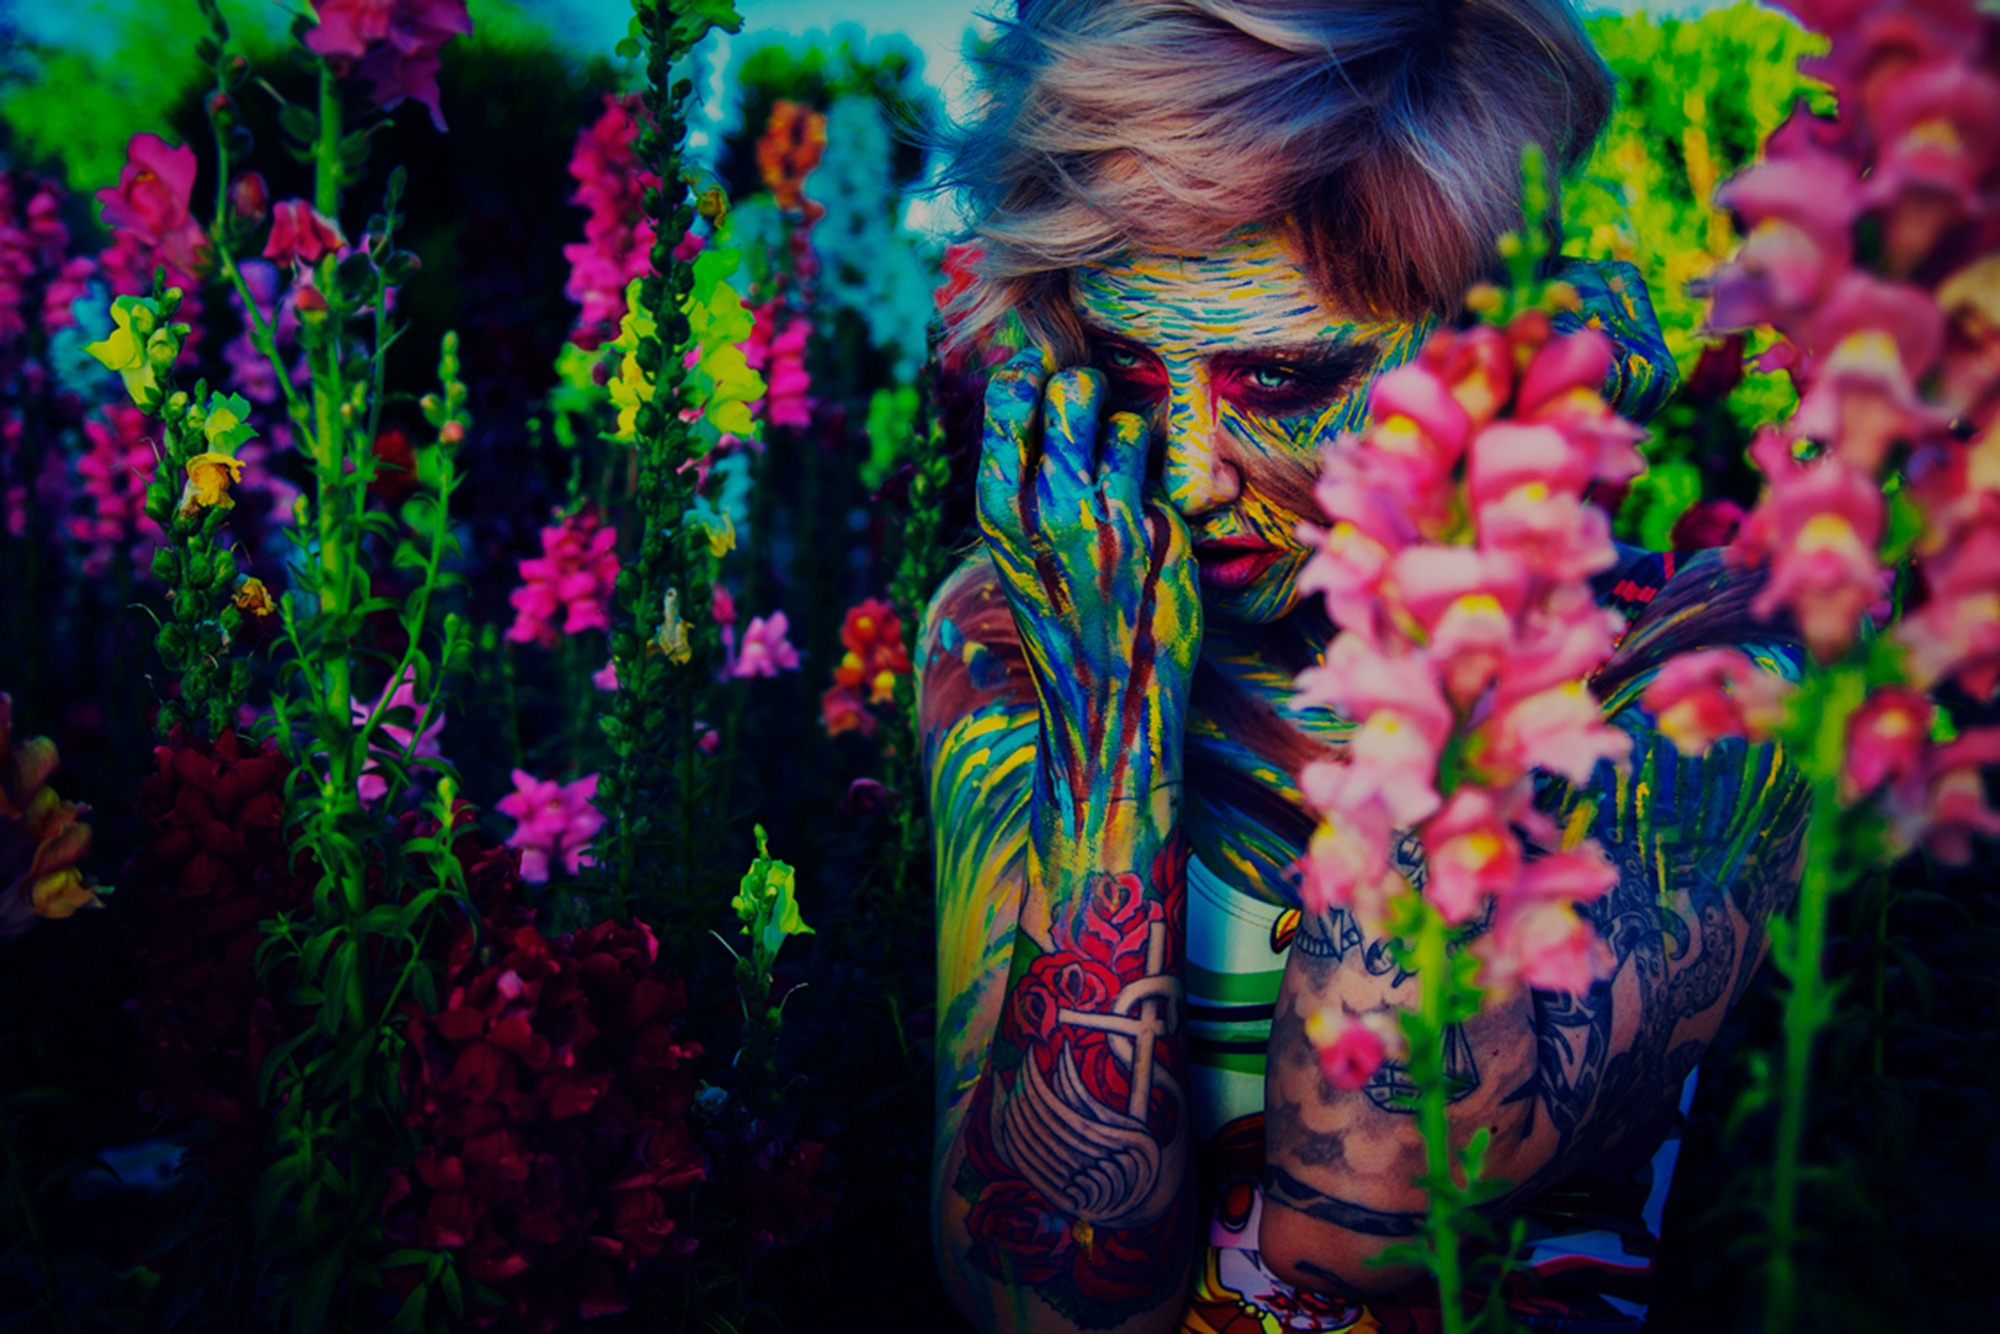 I Must Be Dead: Vibrant and Surreal Portrait Photography